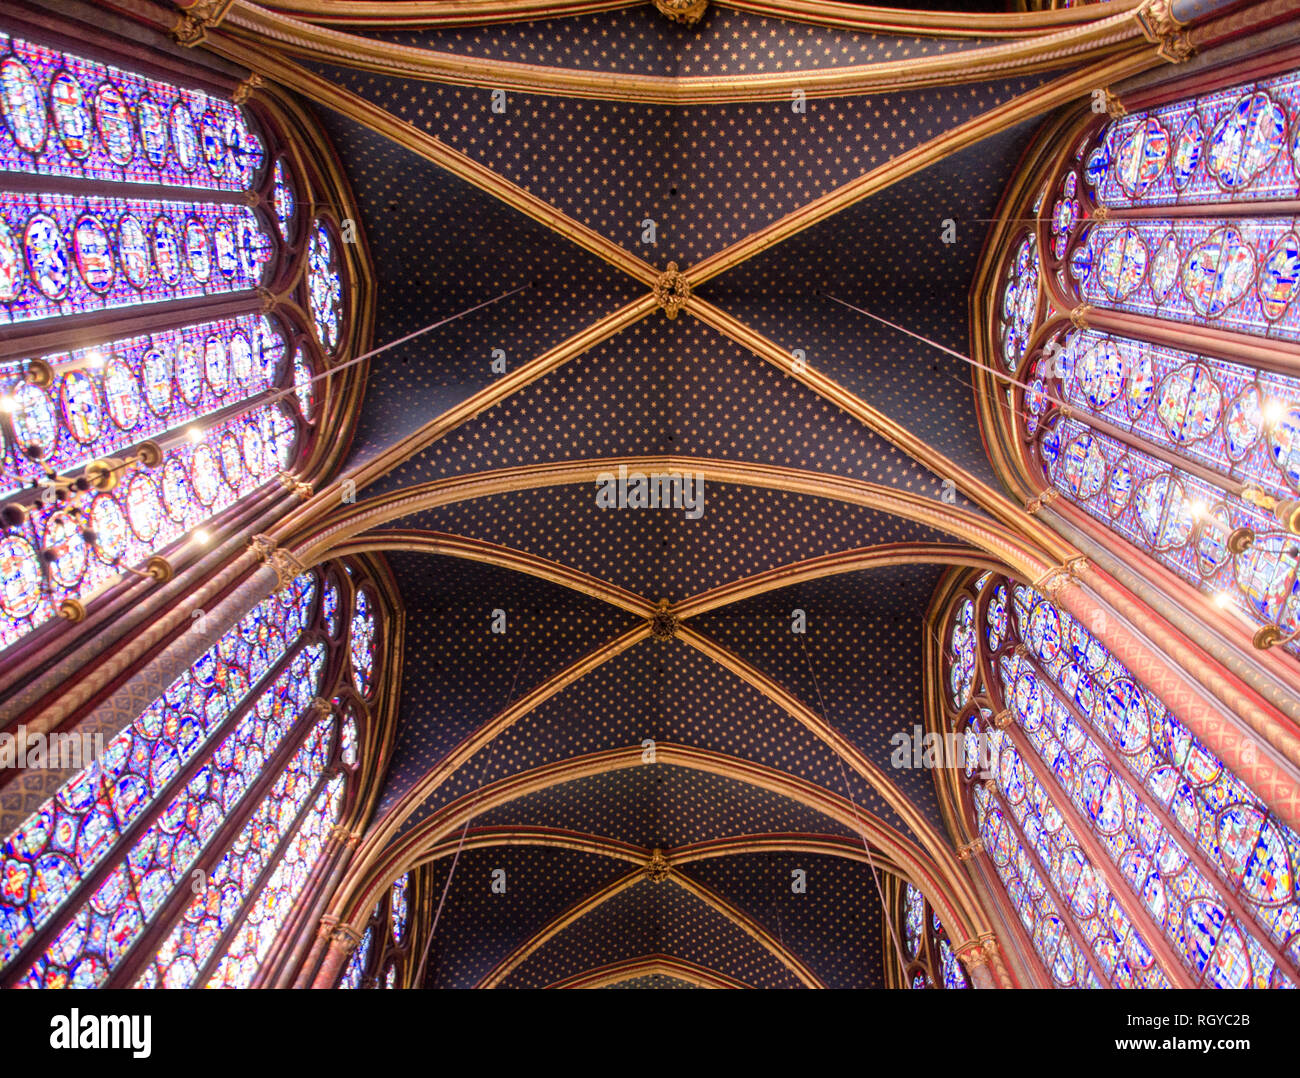 Inside Sainte-Chapelle, the royal chapel in the Gothic style consecrated in 1248. Paris, January 29th, 2019 Stock Photo